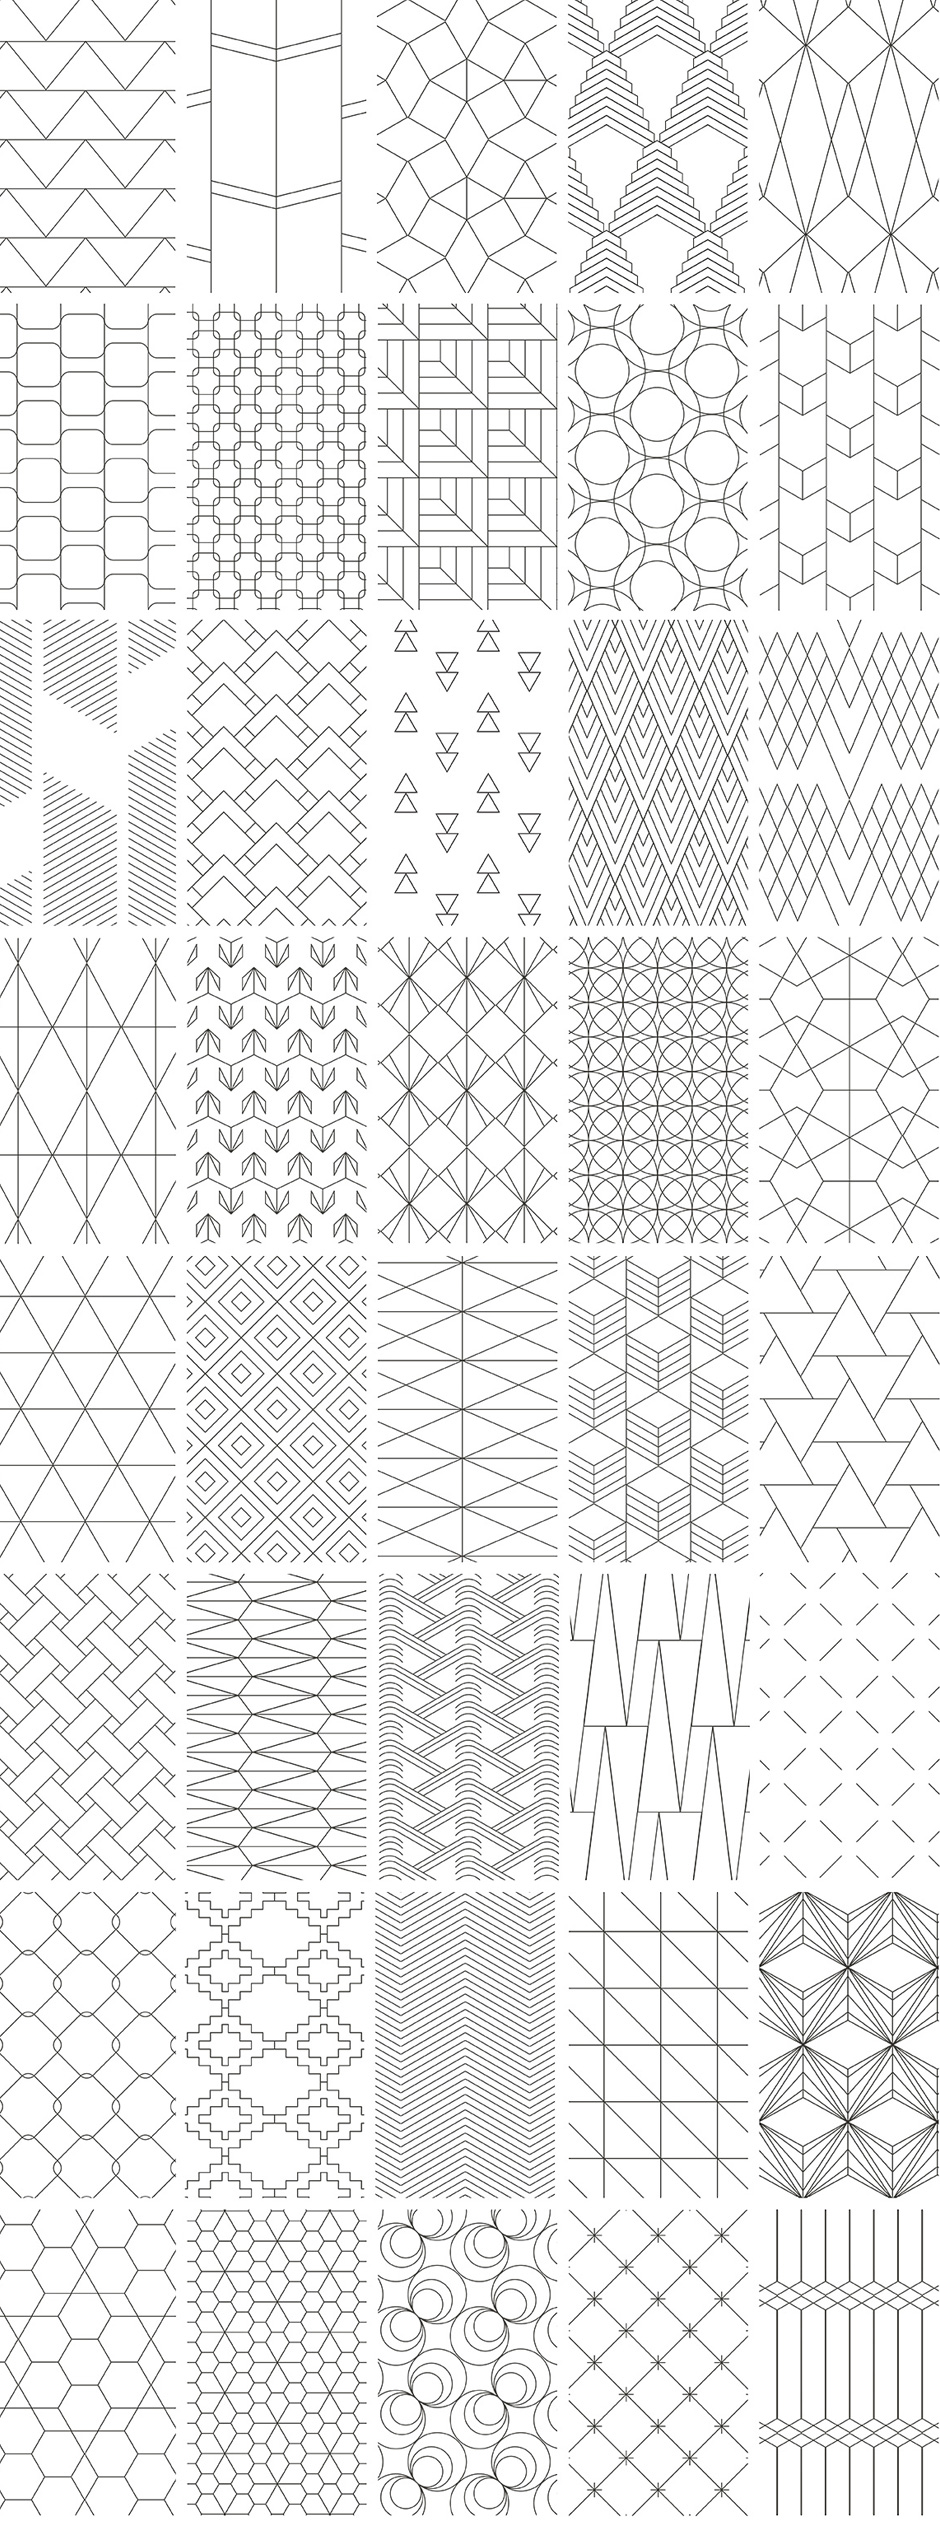 Easy Geometric Patterns Cool Decorating Ideas